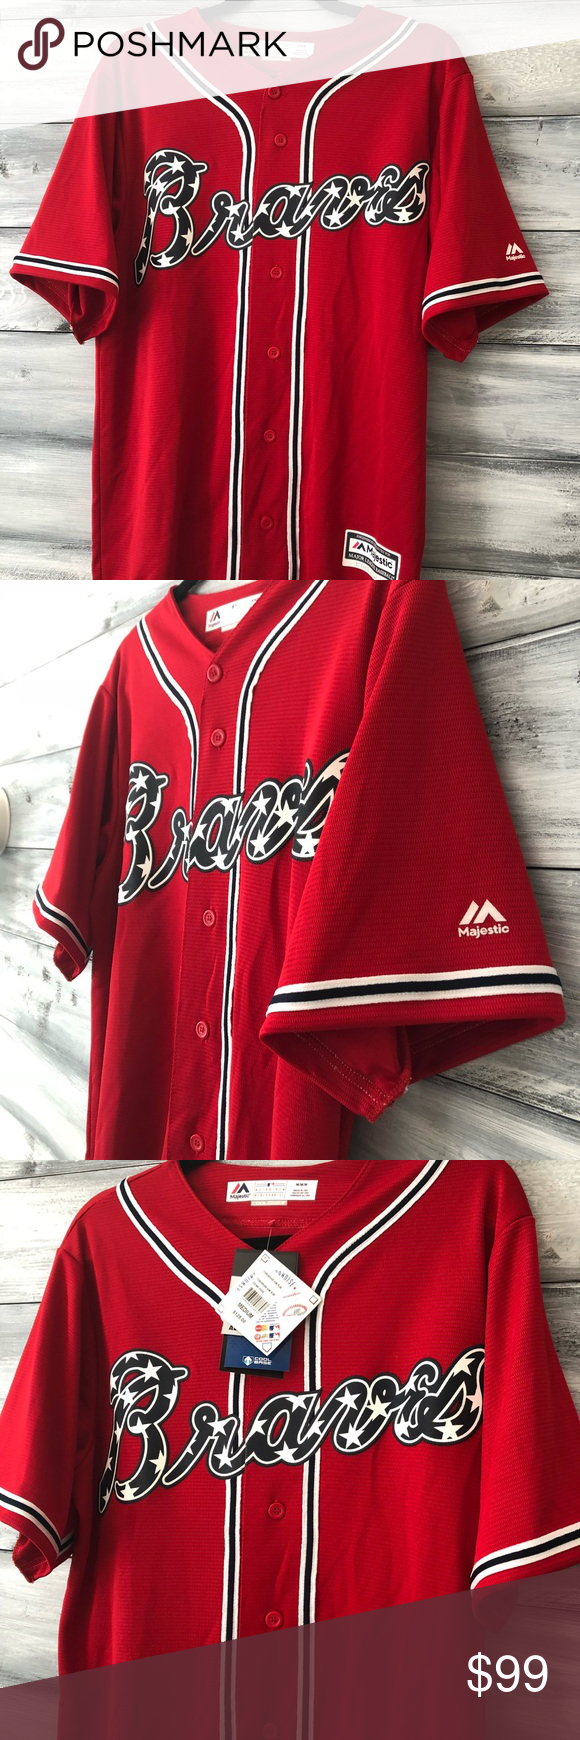 Atlanta Braves Jersey Men S Majestic Cool Base Brand New Men S Medium Authentic Braves Jersey Purchased At With Images Atlanta Braves Jersey Braves Jersey Clothes Design